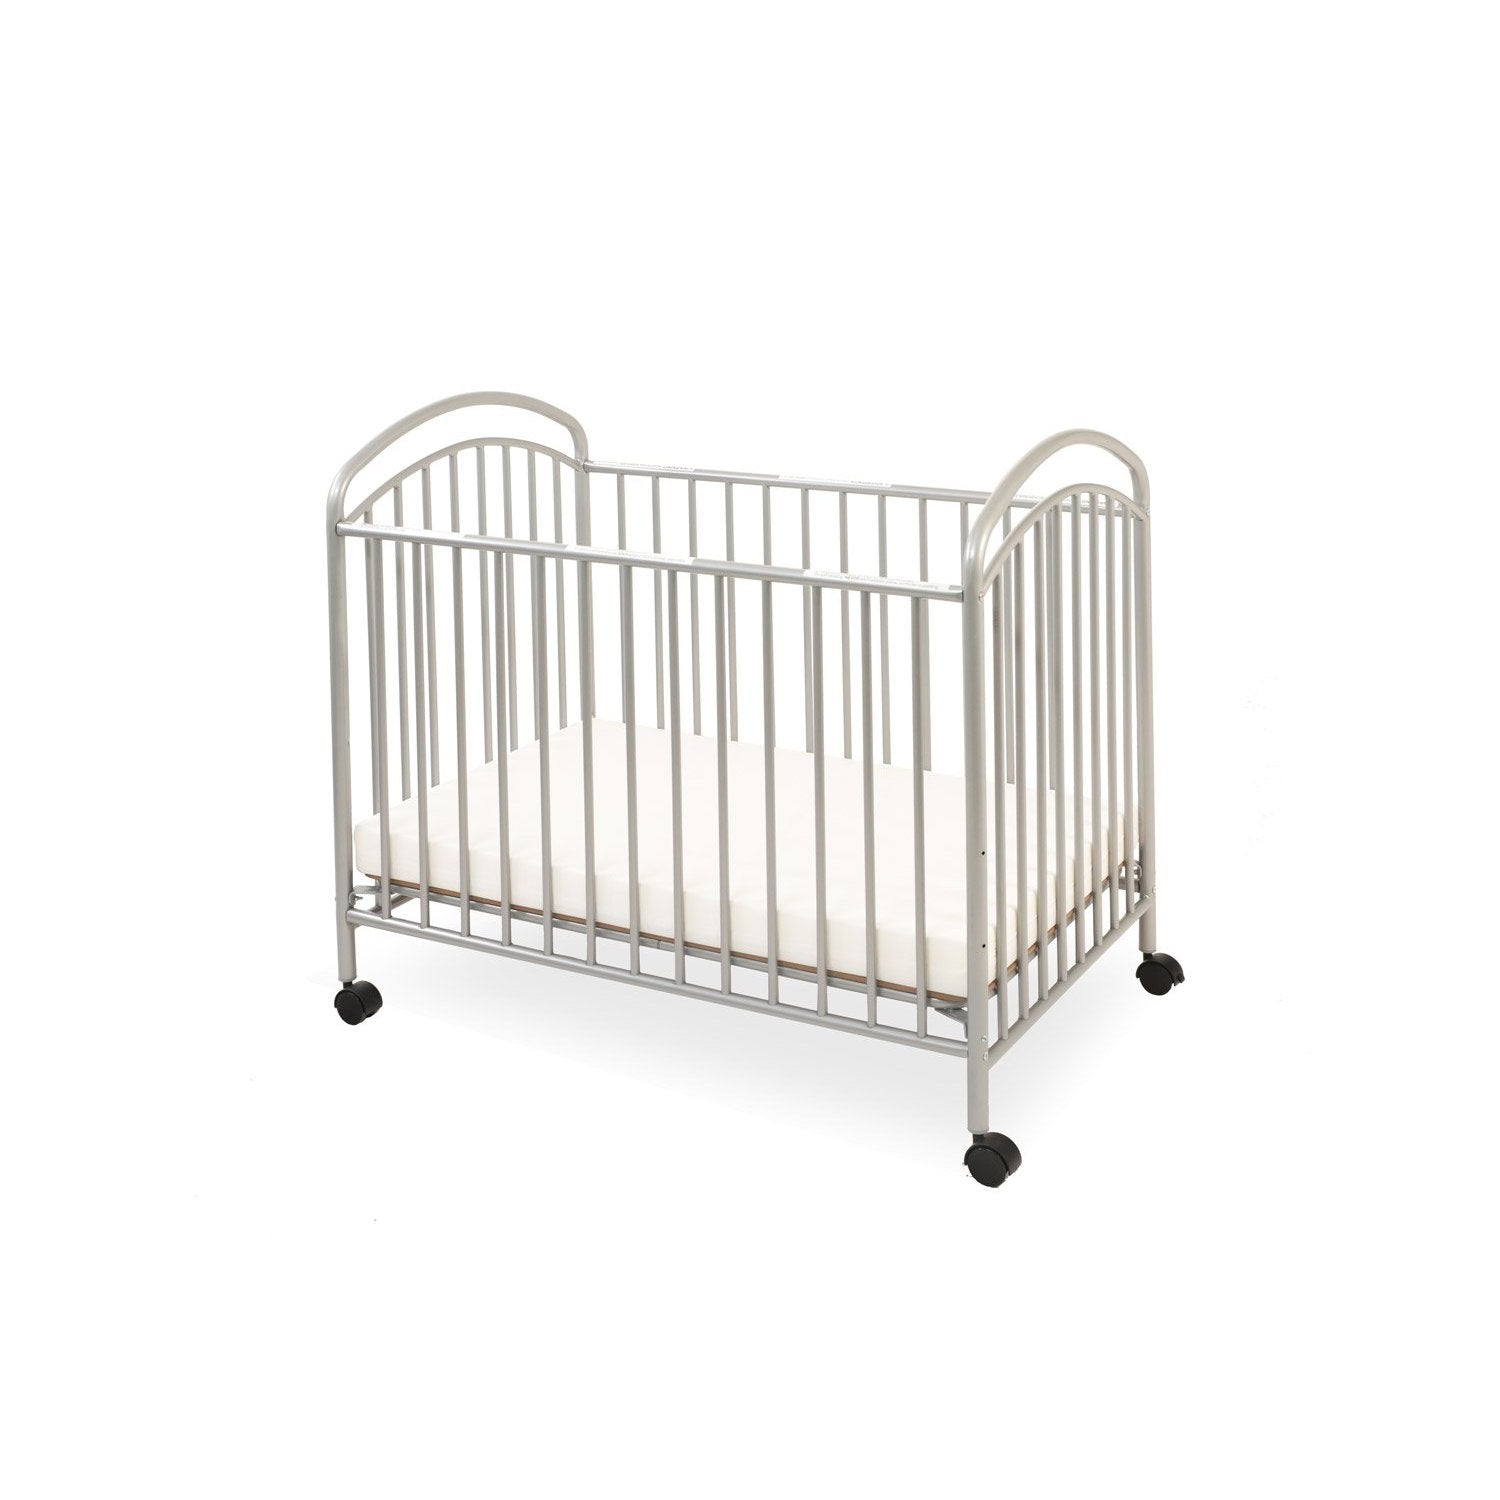 ... Classic Arched Mini/Portable Crib With Mattress, By L.A.Baby,Toddlers  Buy Here ...